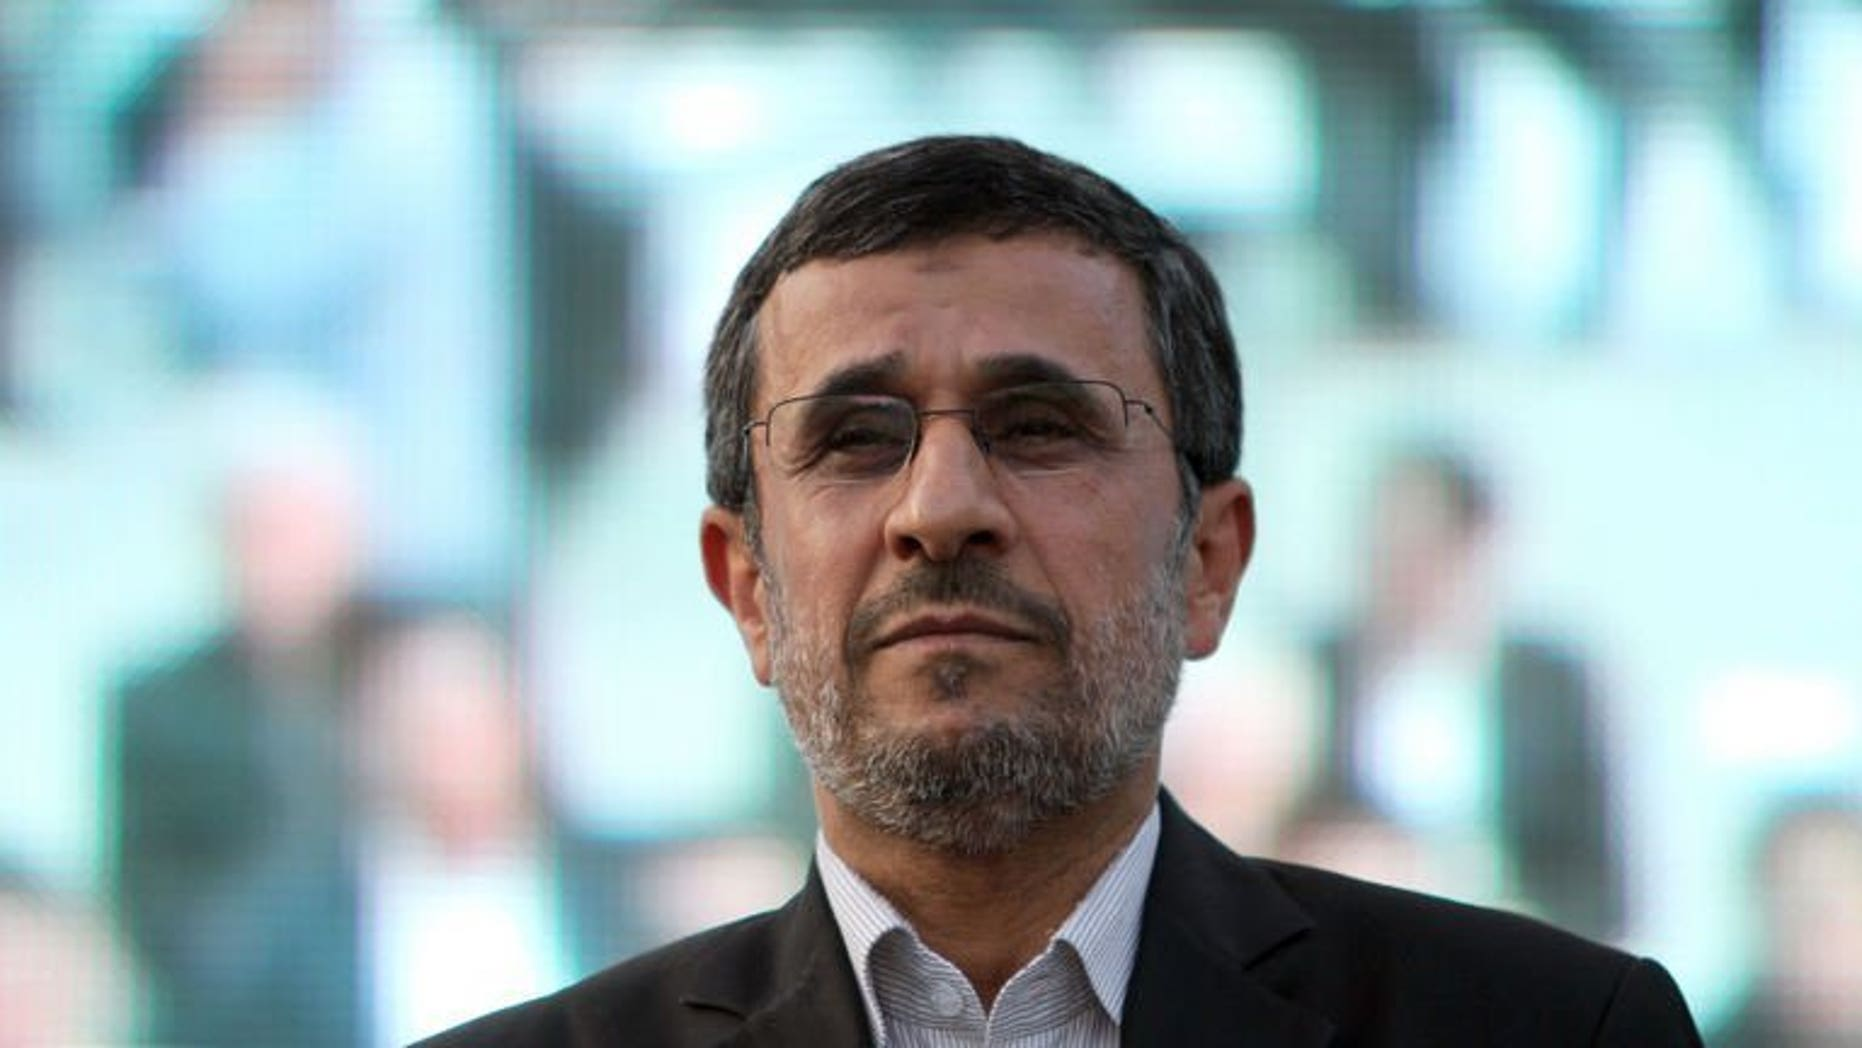 Iran's outgoing President Mahmoud Ahmadinejad attends a ceremony at Tehran's Golestan Palace, on July 7, 2013. Ahmadinejad is set to make a two-day visit this week to neighbouring Iraq, according to Prime Minister Nuri al-Maliki's spokesman.